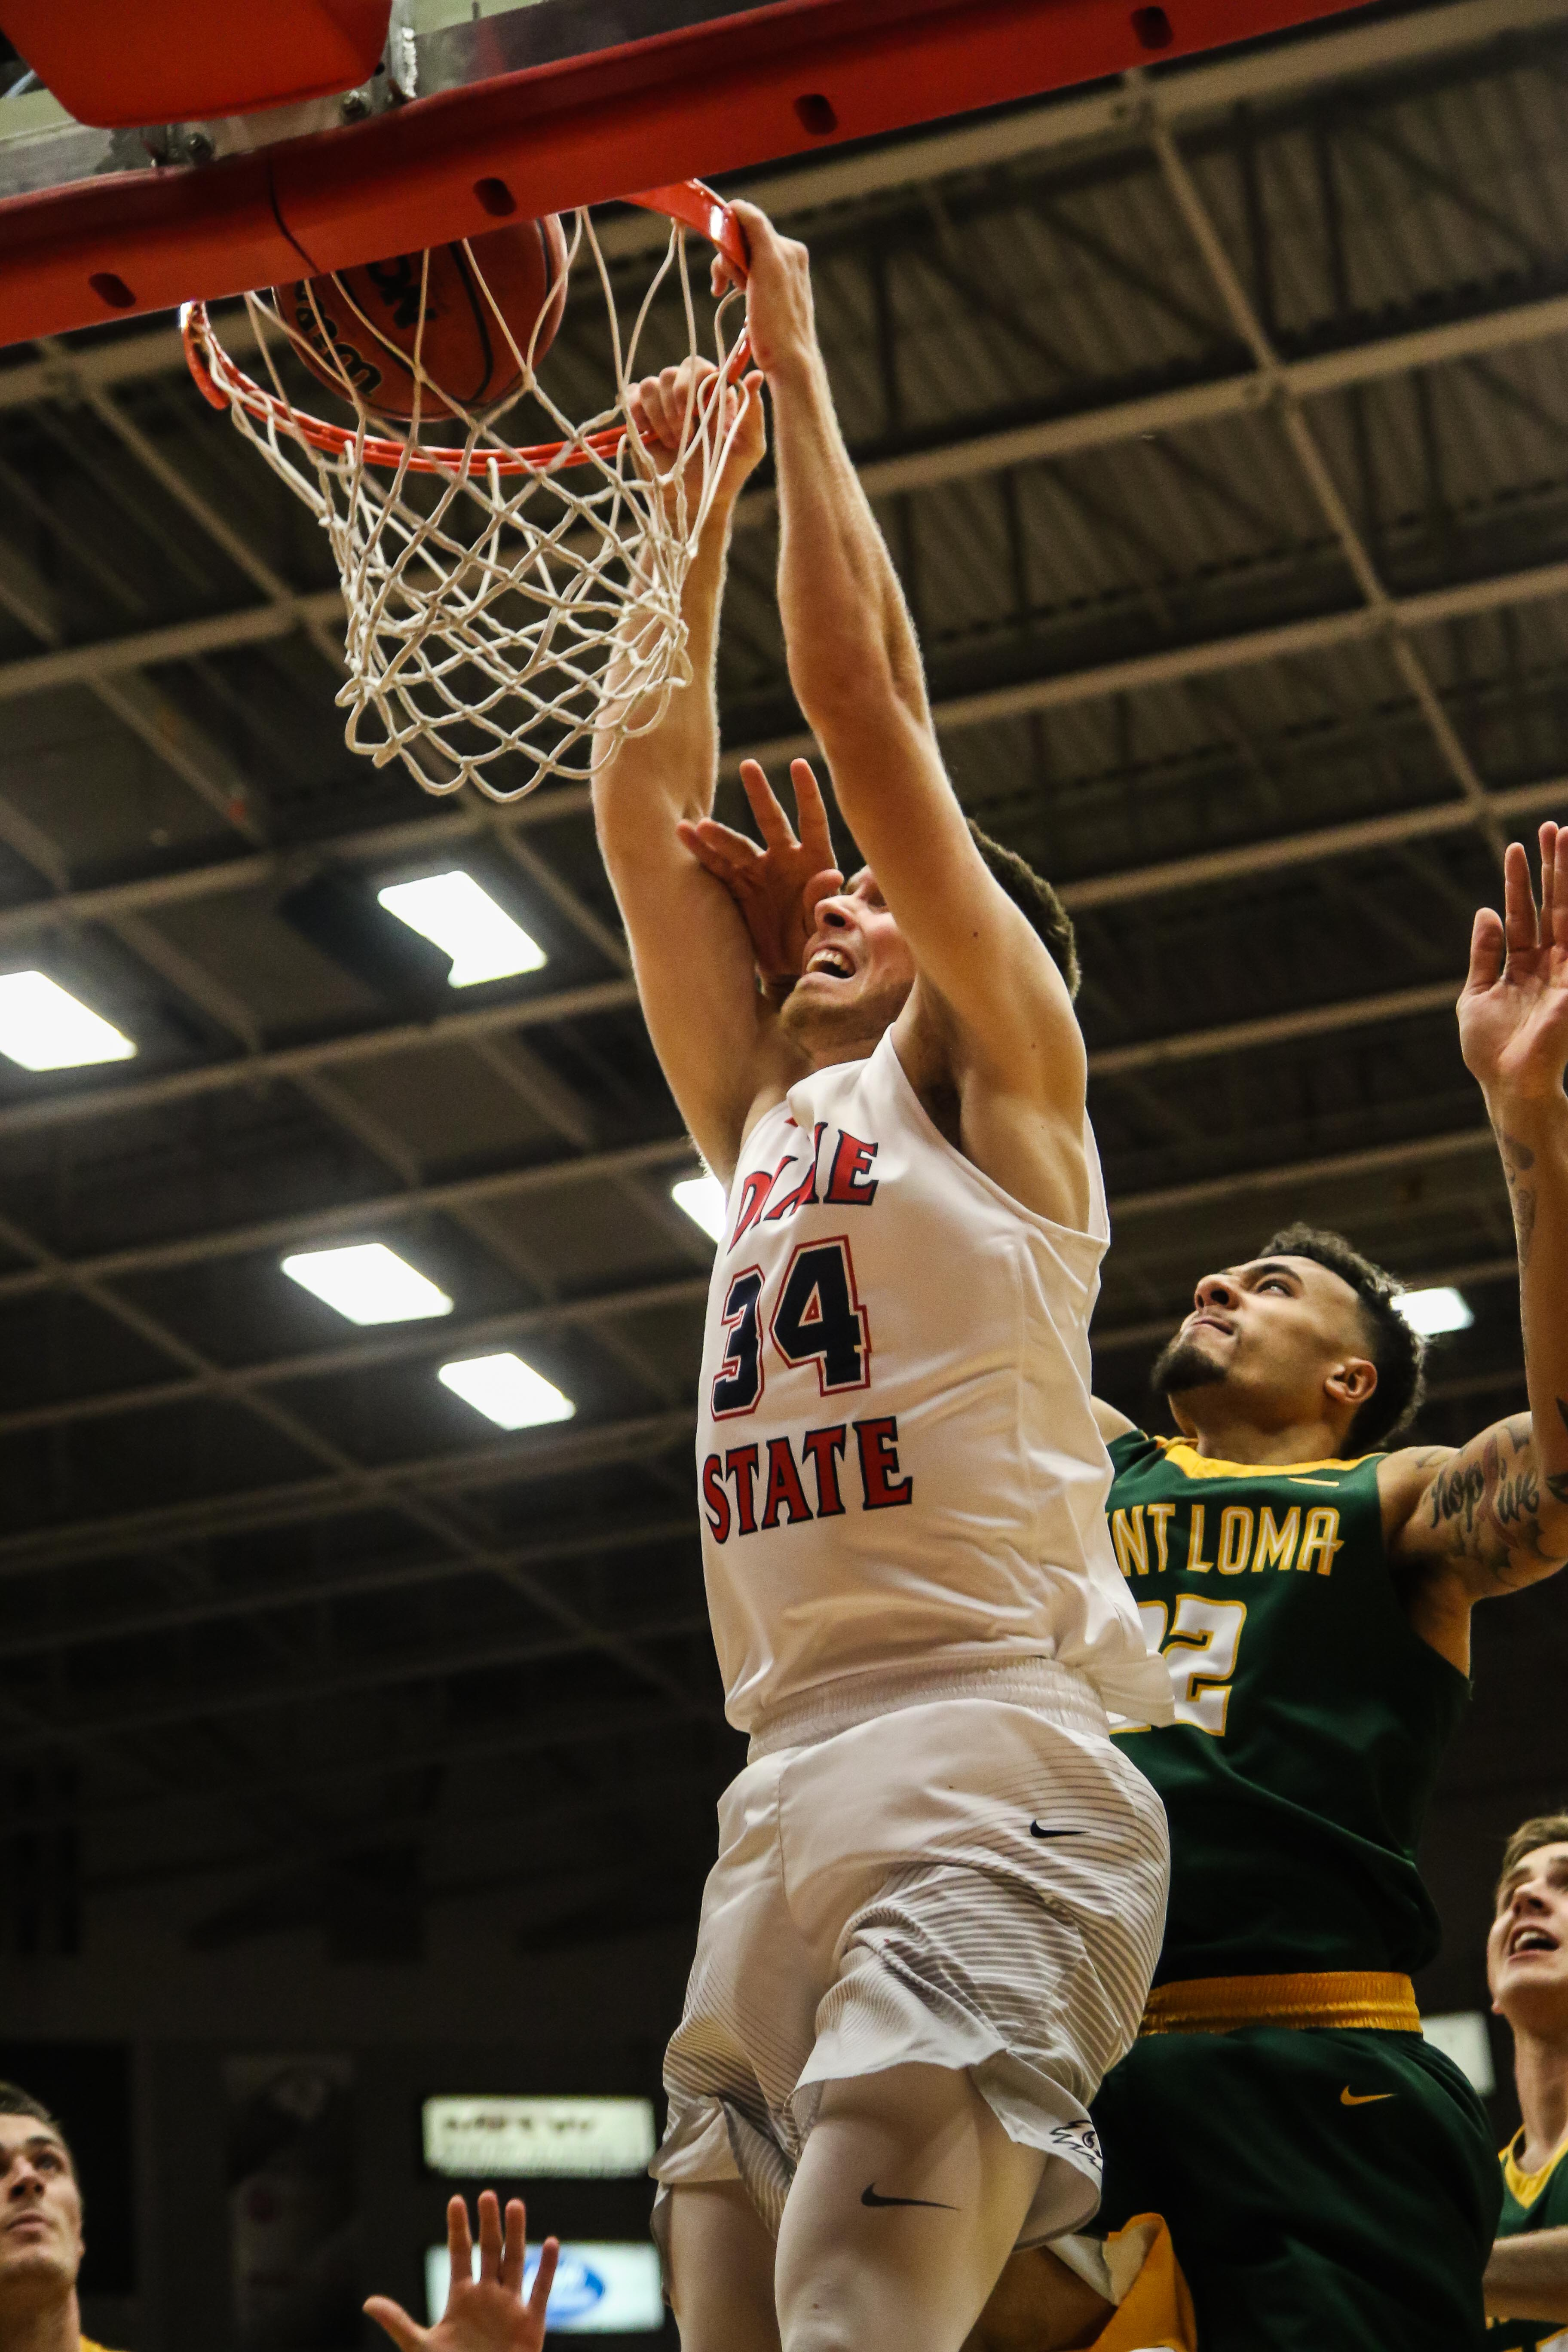 Dixie State's Zac Hunter (34), Dixie State University vs Point Loma Nazarene  University, Men's Basketball, St. George, Utah, Dec. 19, 2016, | Photo by Kevin Luthy, St. George News